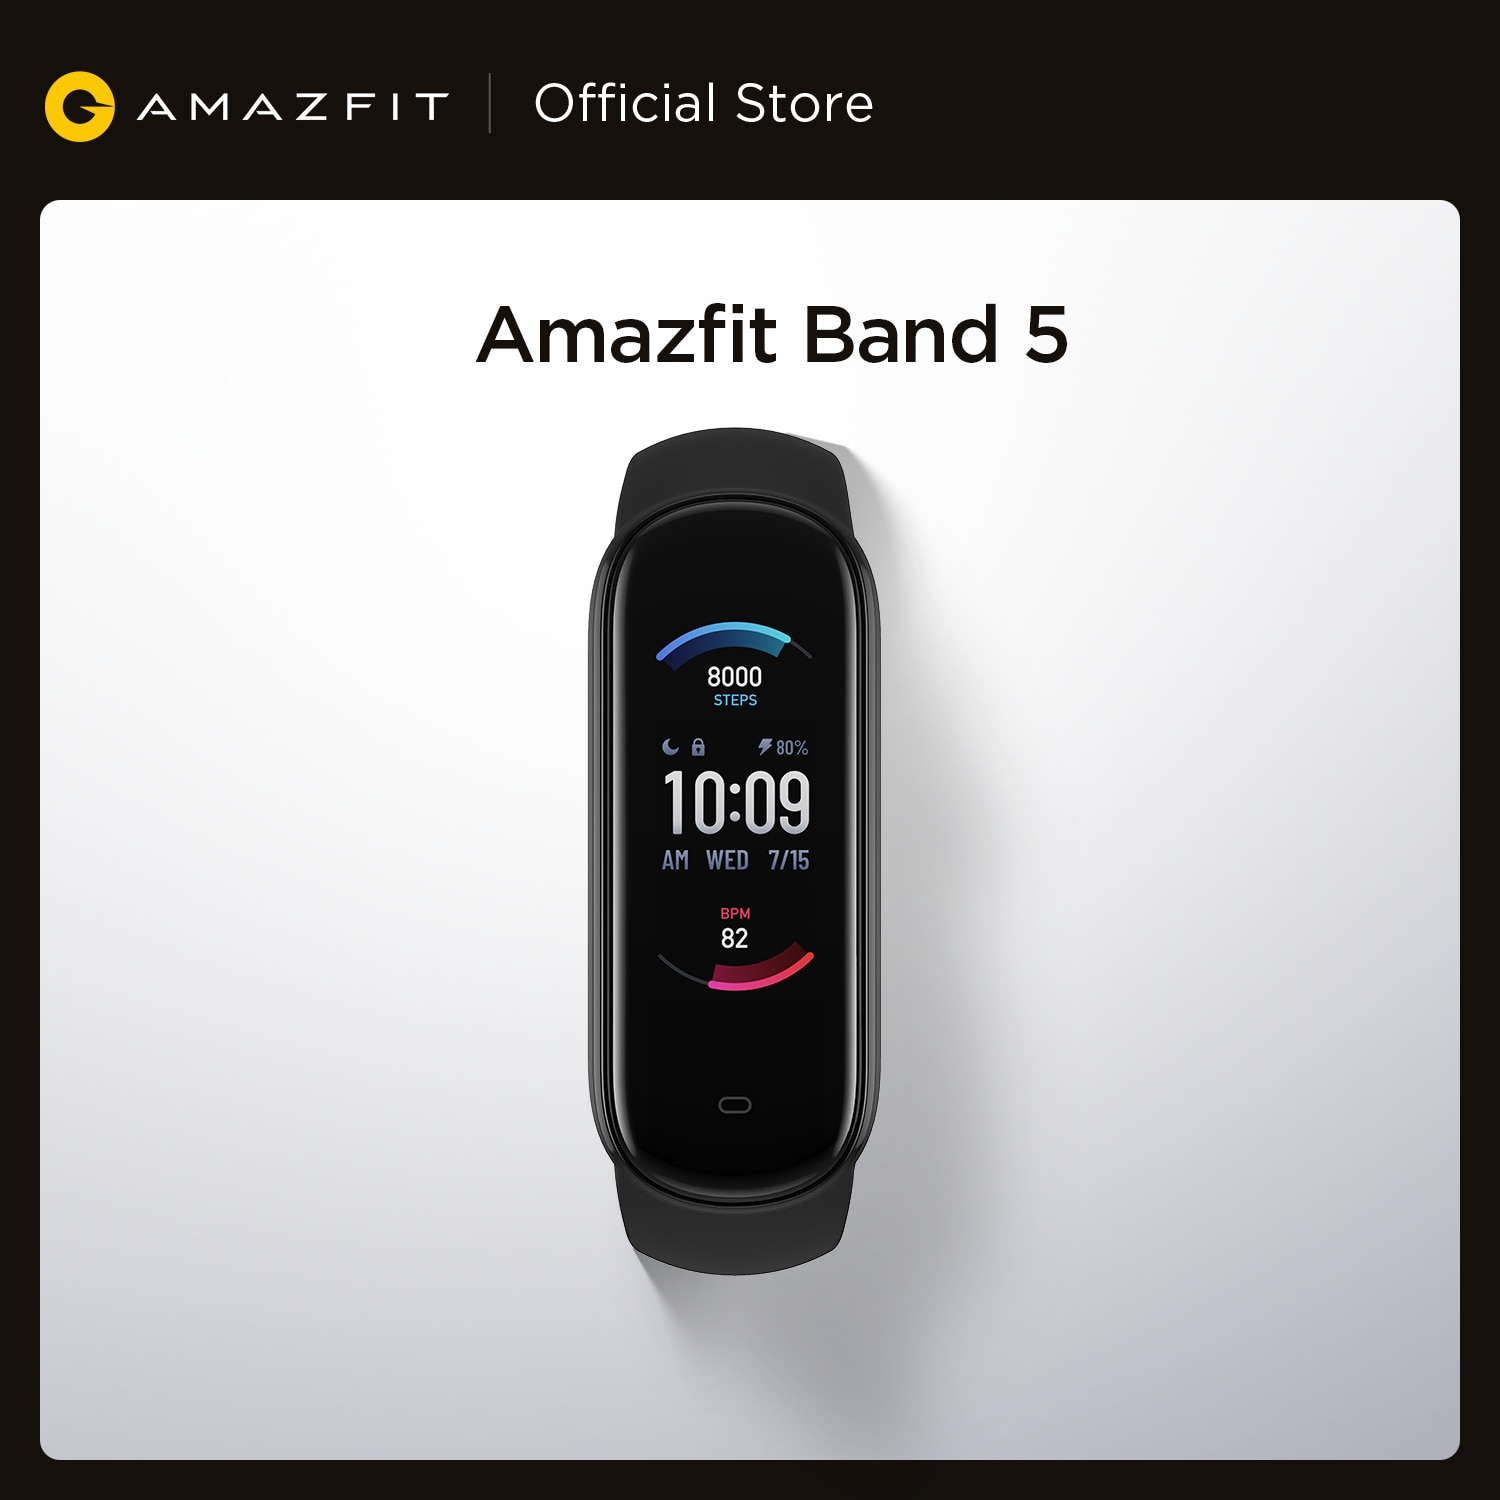 2020 New Amazfit Band 5 Smart Bracelet Color Display Heart Rate Fitness Tracker Waterproof Bluetooth 5.0 Sport Smart Wristband